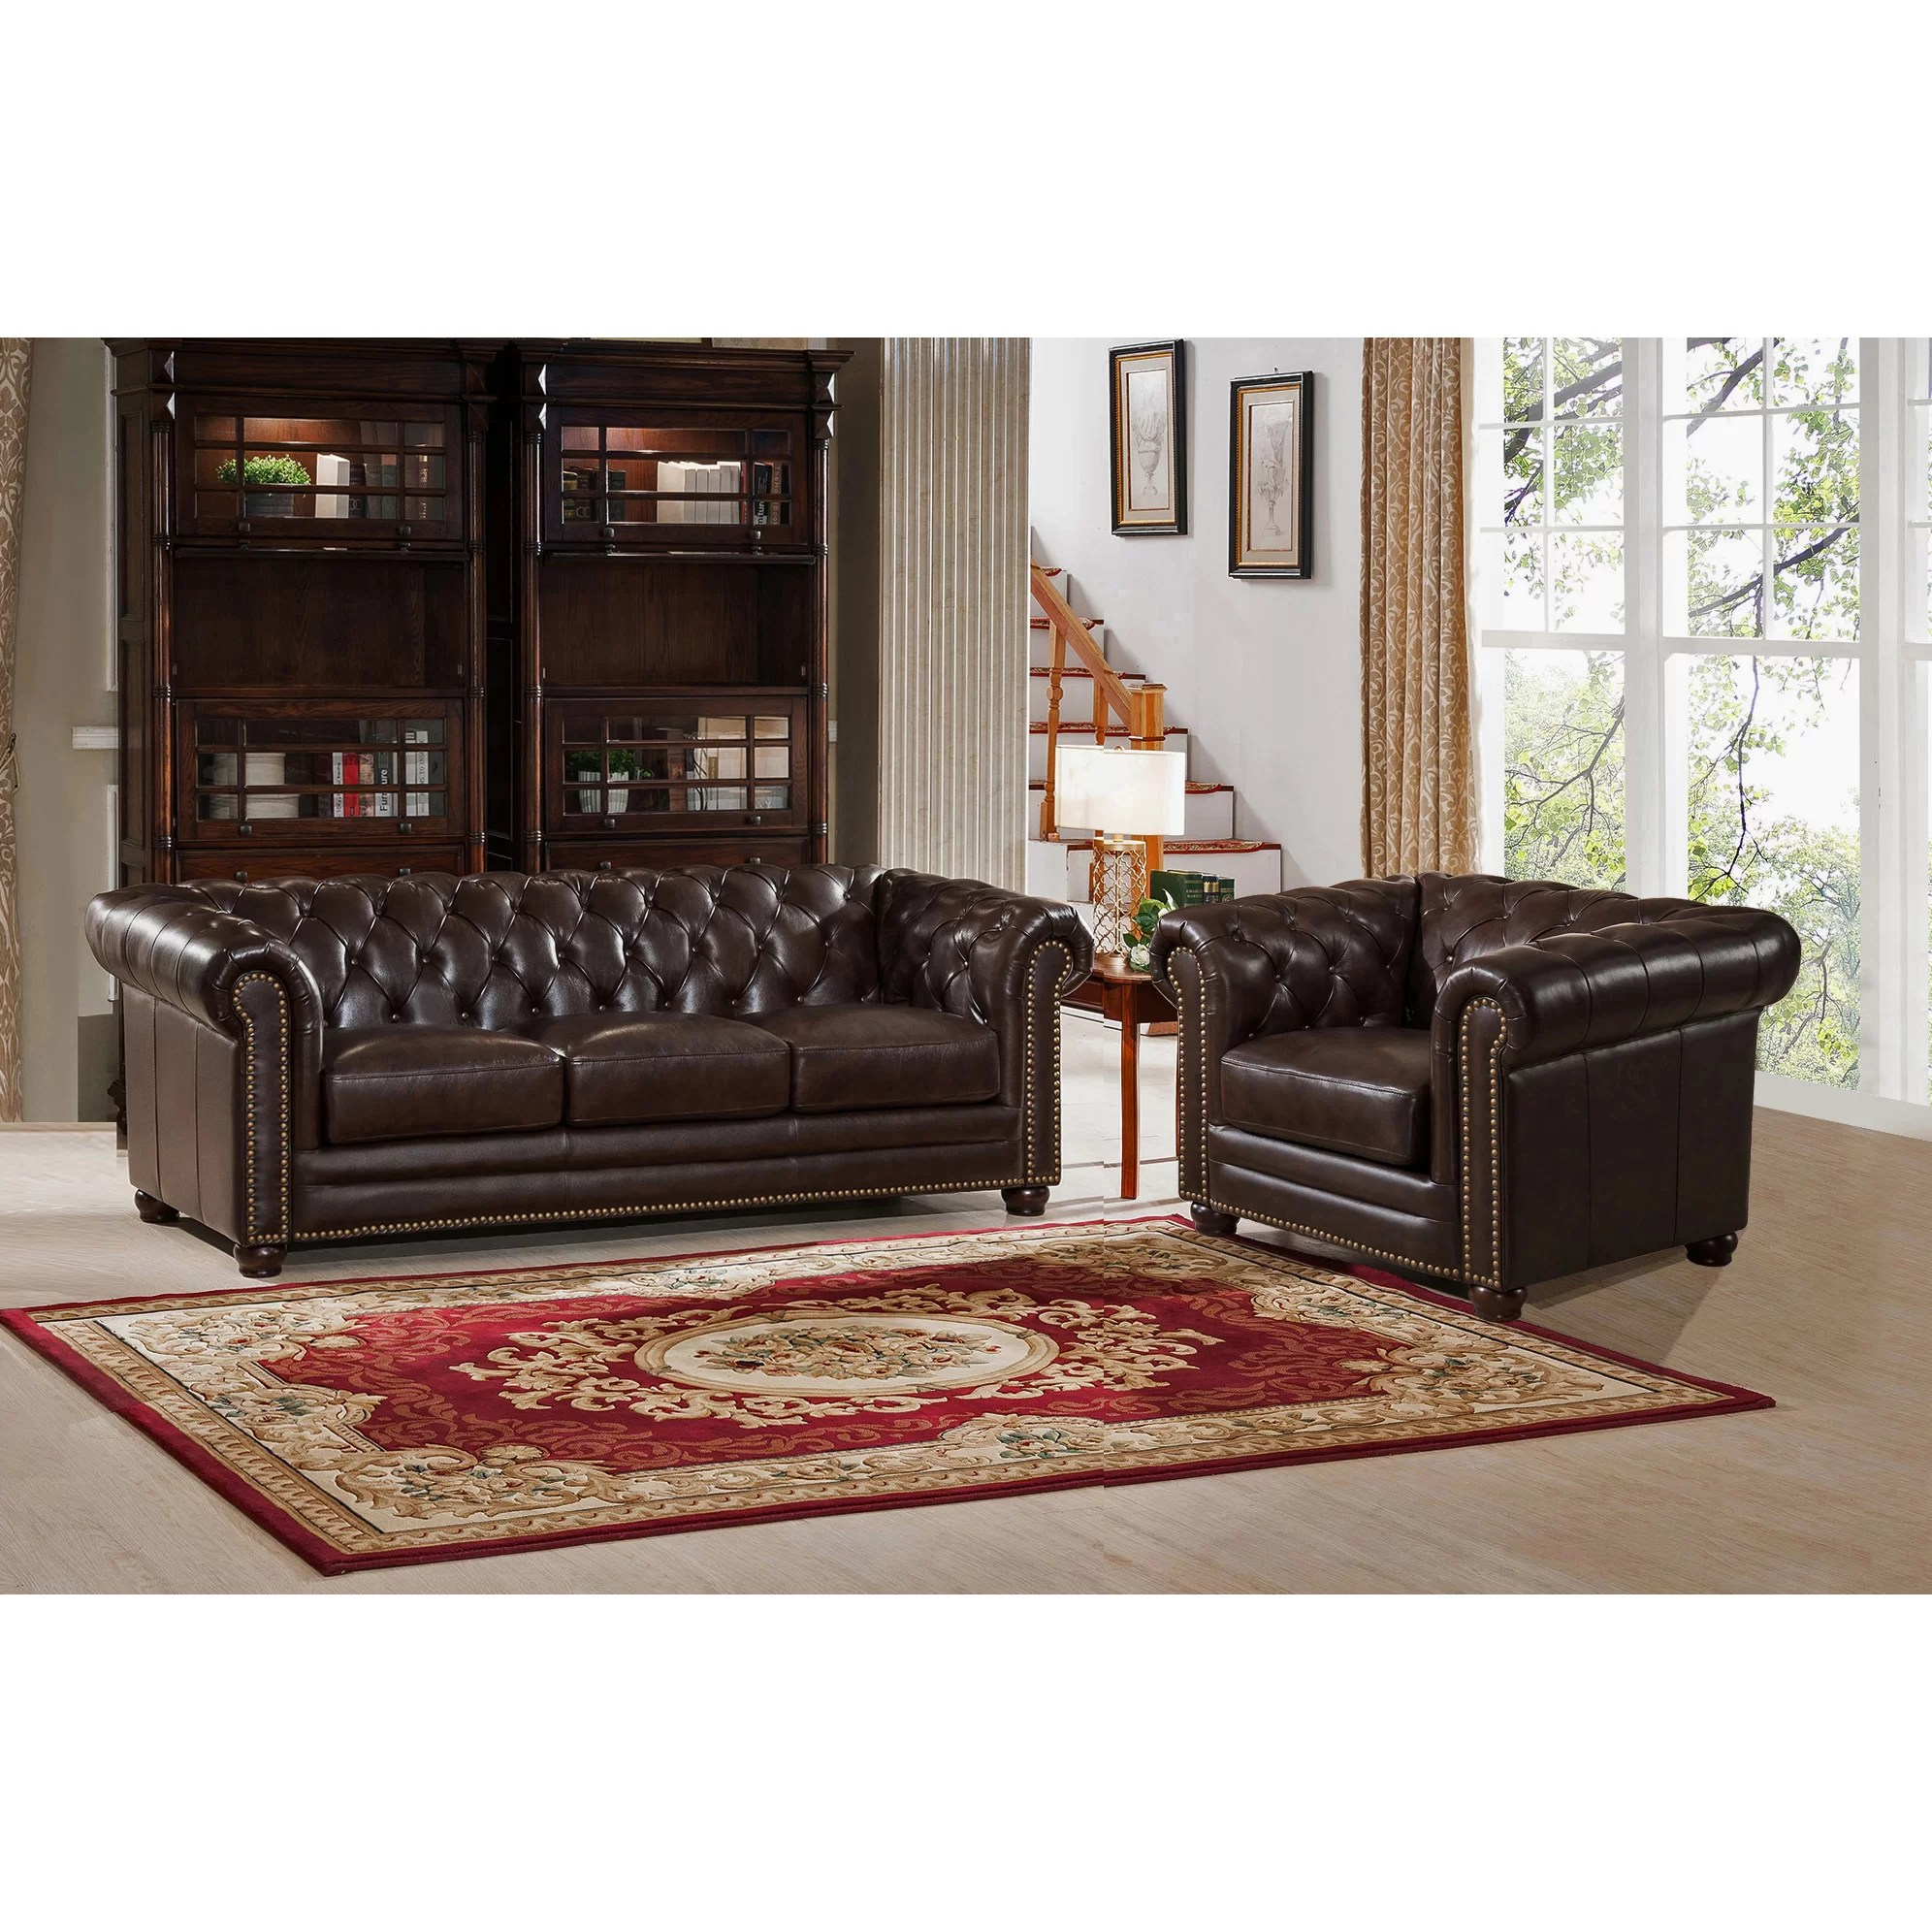 kensington leather chair wood frame accent chairs amax top grain chesterfield sofa and